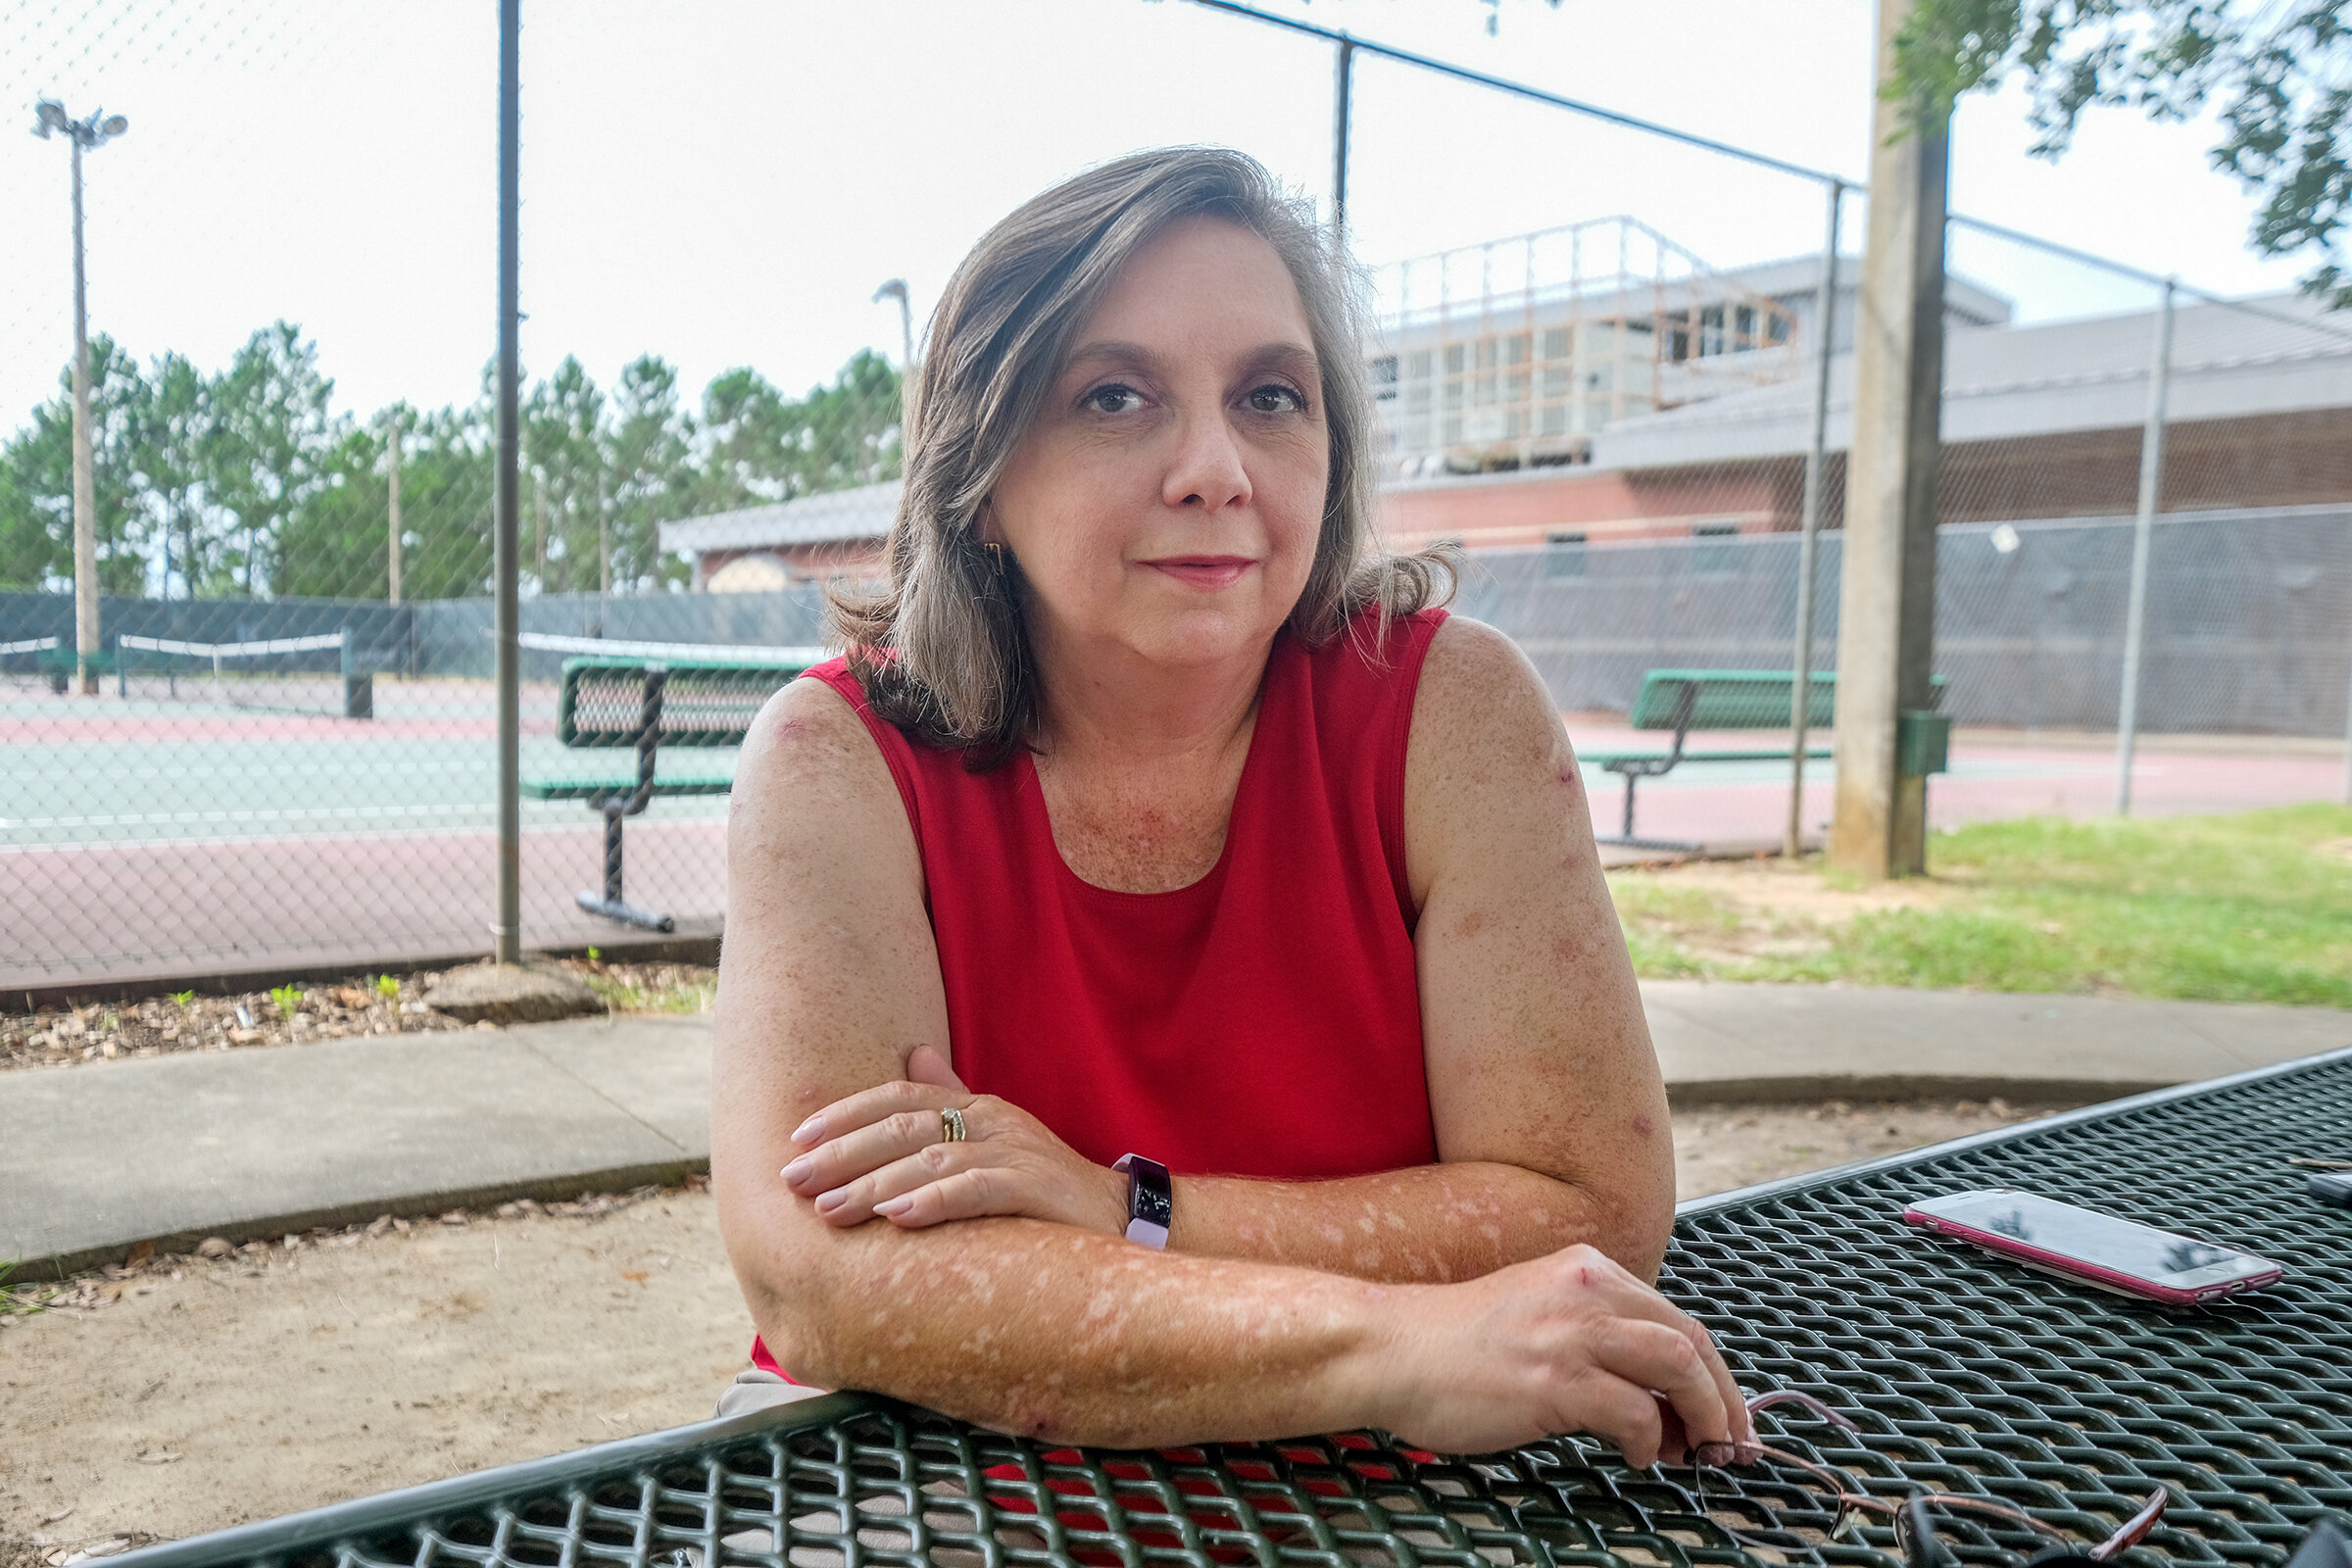 Susan Wright, 51, finds calm after a near half century of struggle with anxiety.   Charles A. Smith/Mississippi Center for Investigative Reporting